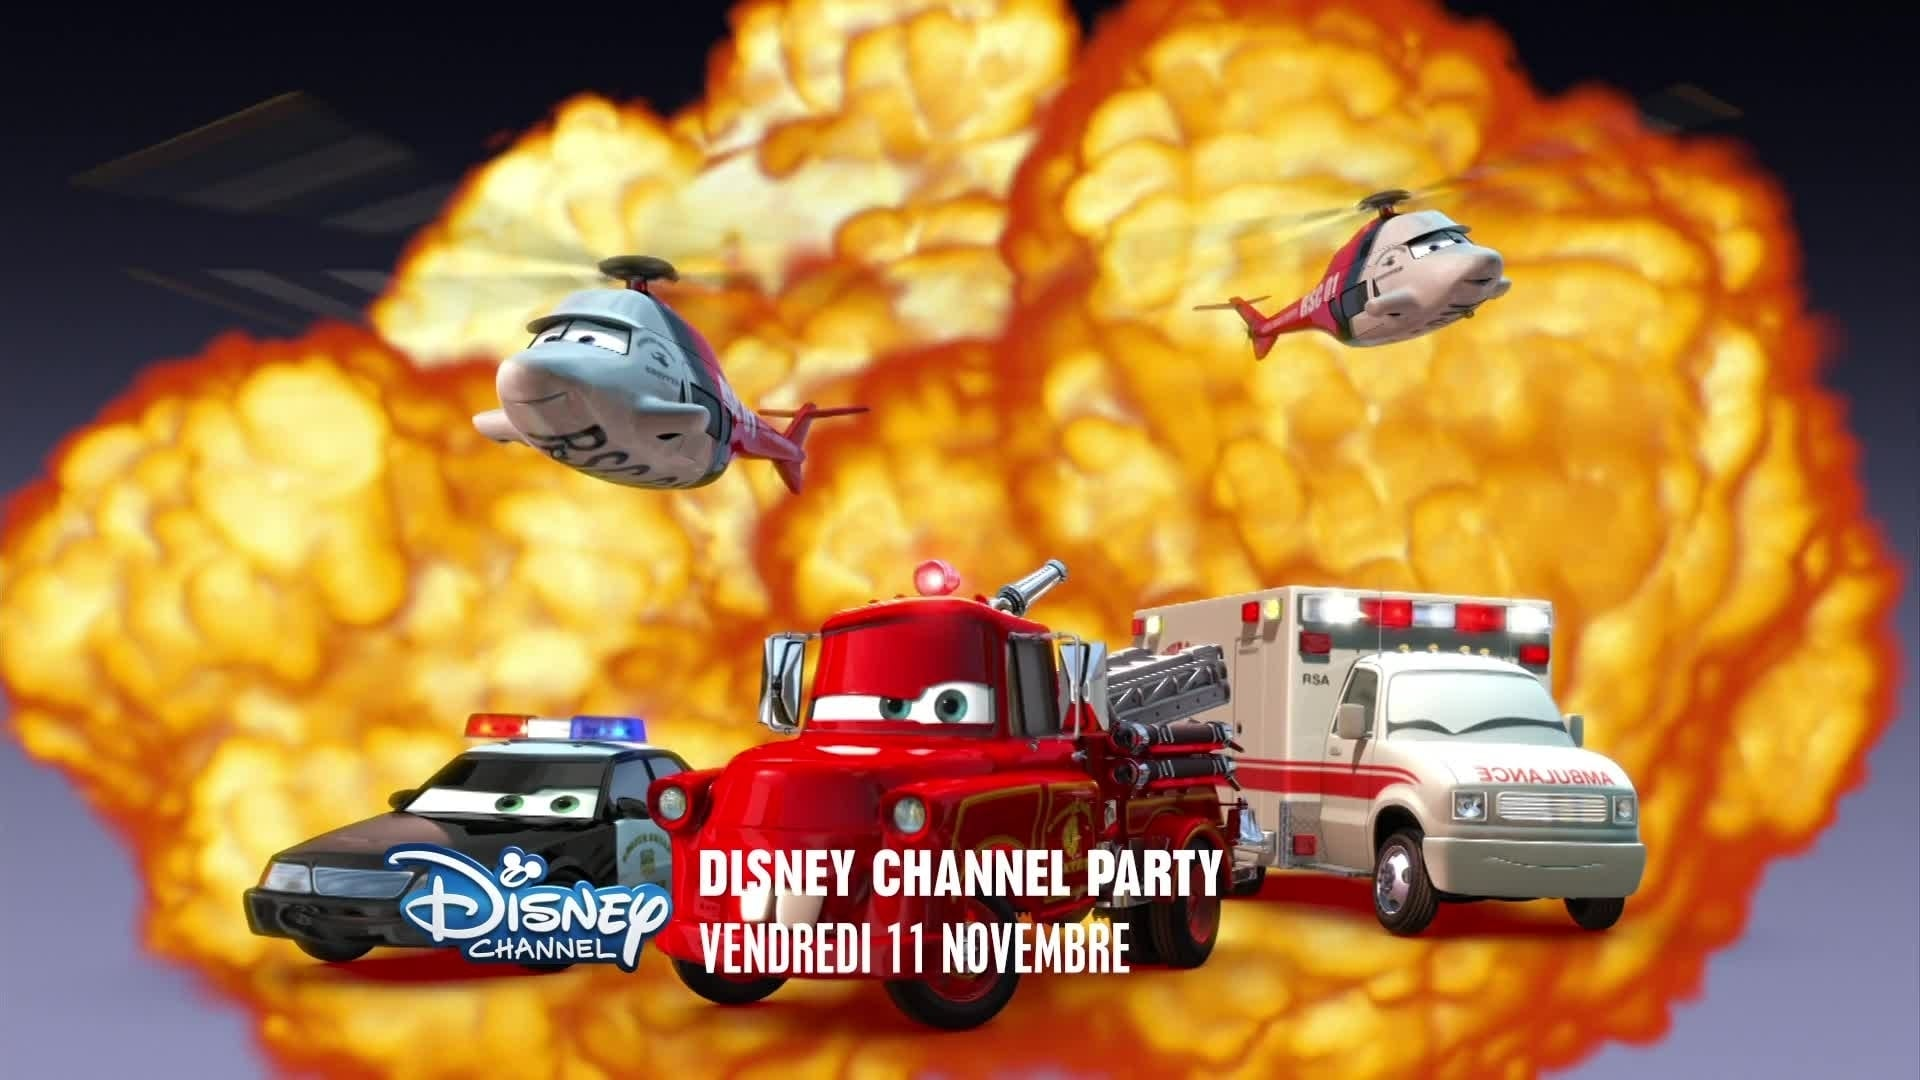 Disney Channel Party